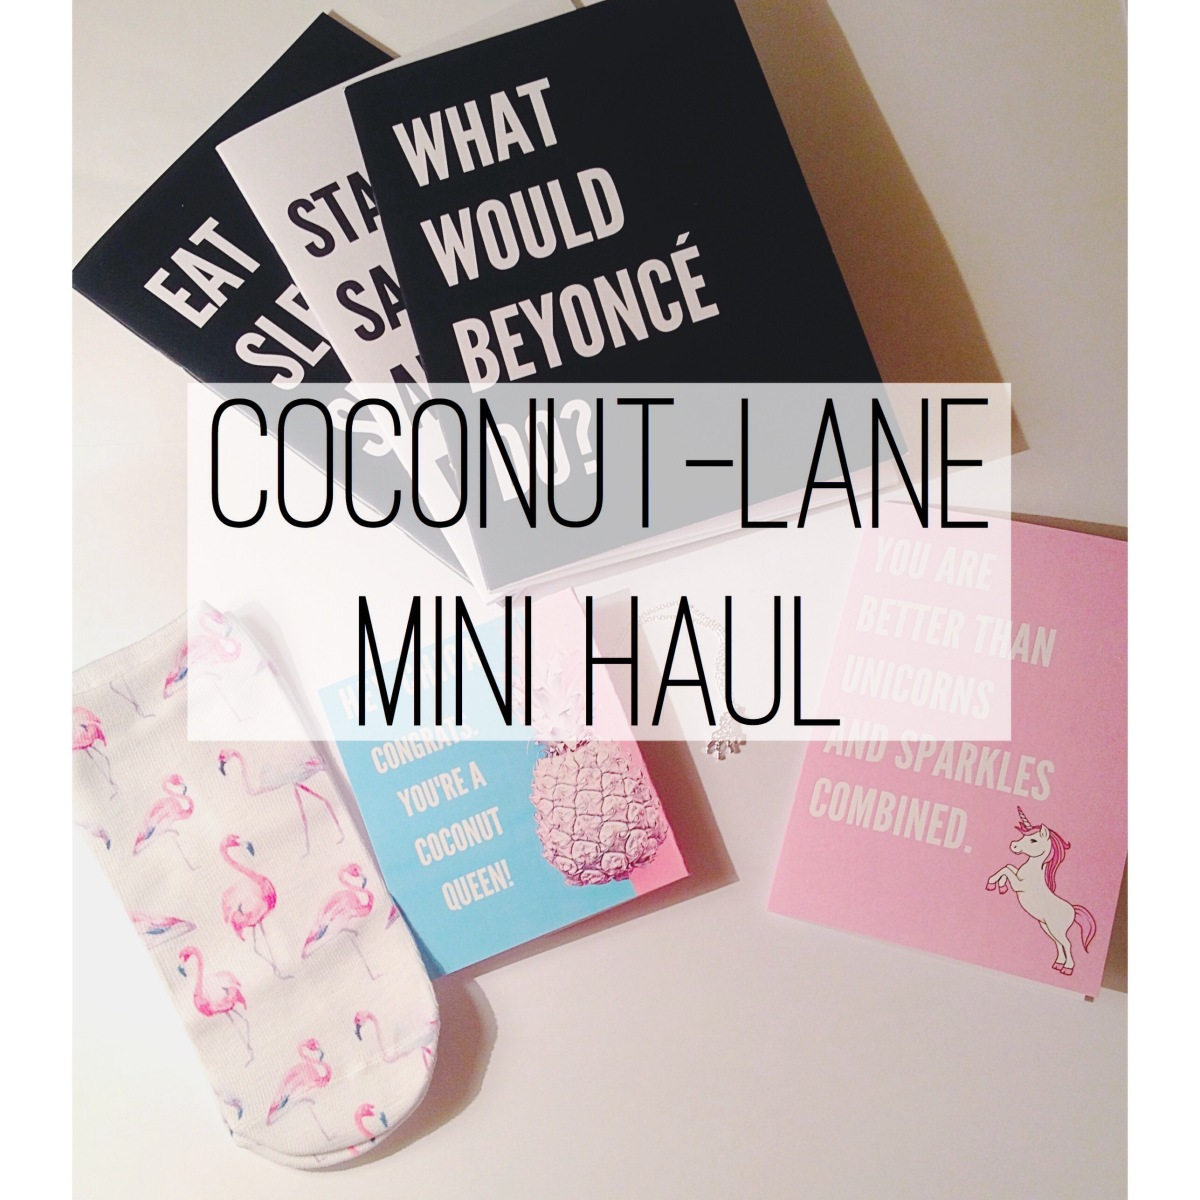 Coconut-lane mini haul